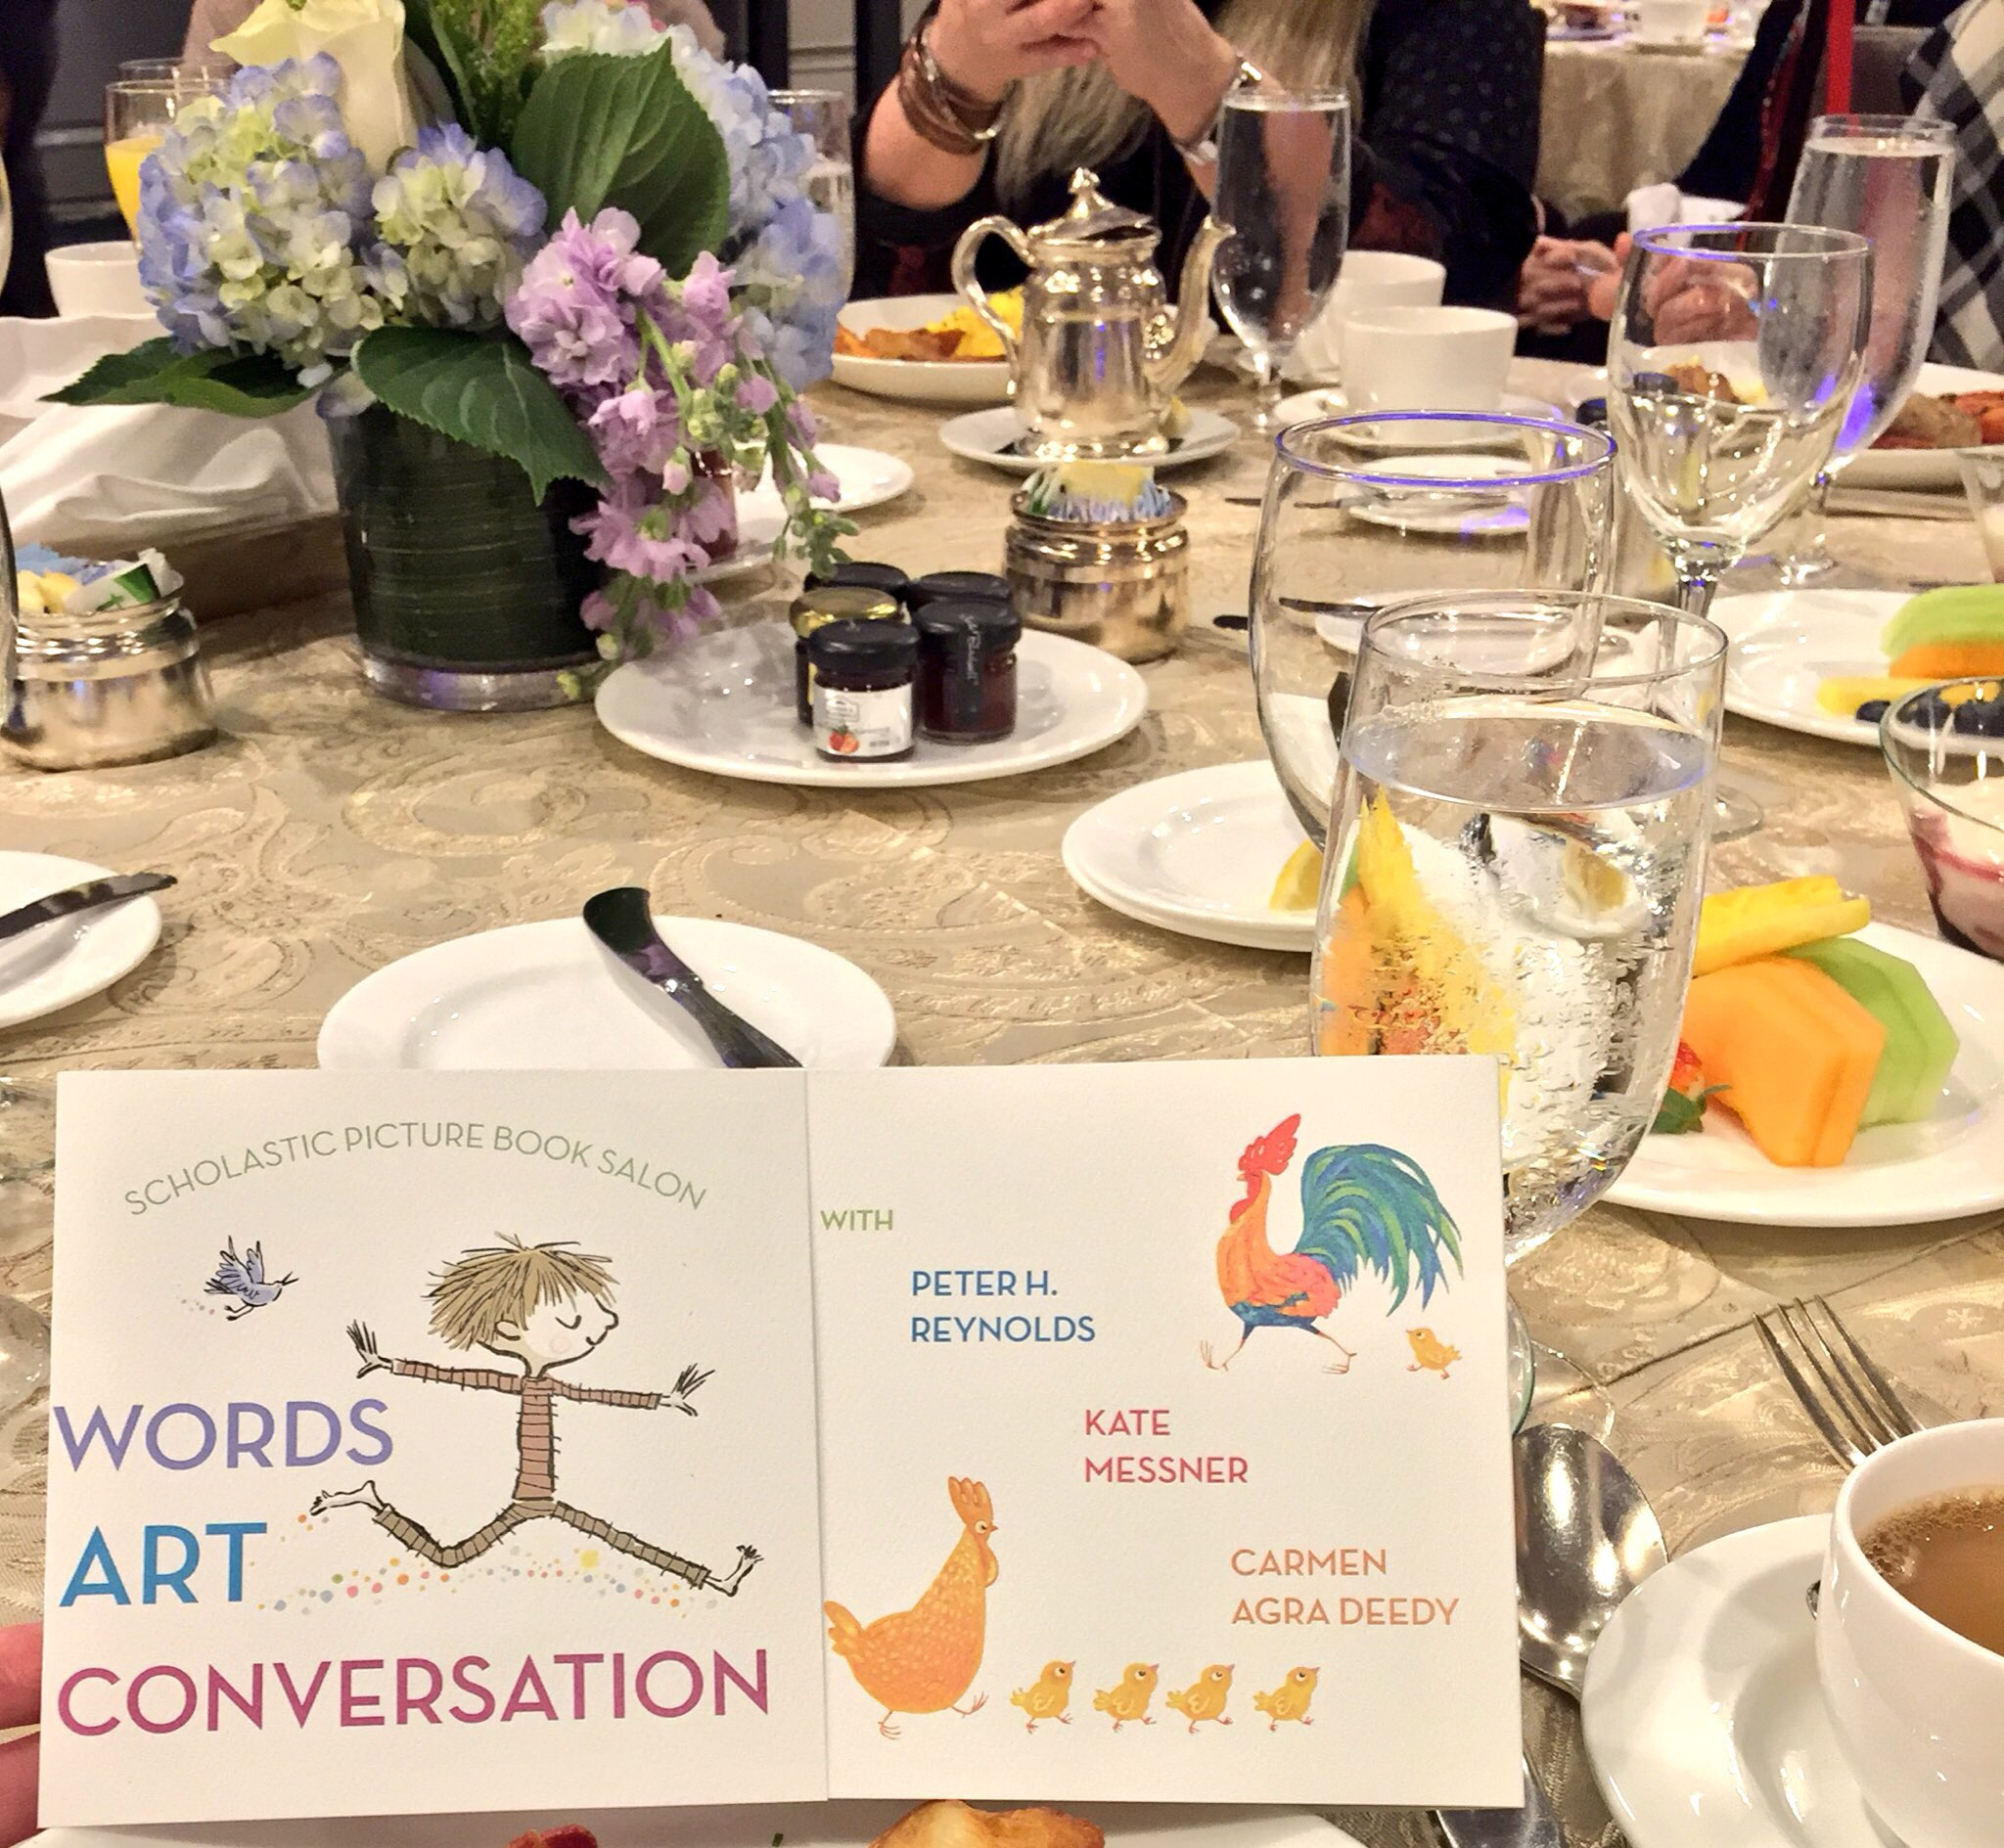 Up Next, Second Breakfast With Scholastic Authors & Illustrators Talking  About What We All Love Picture Books!